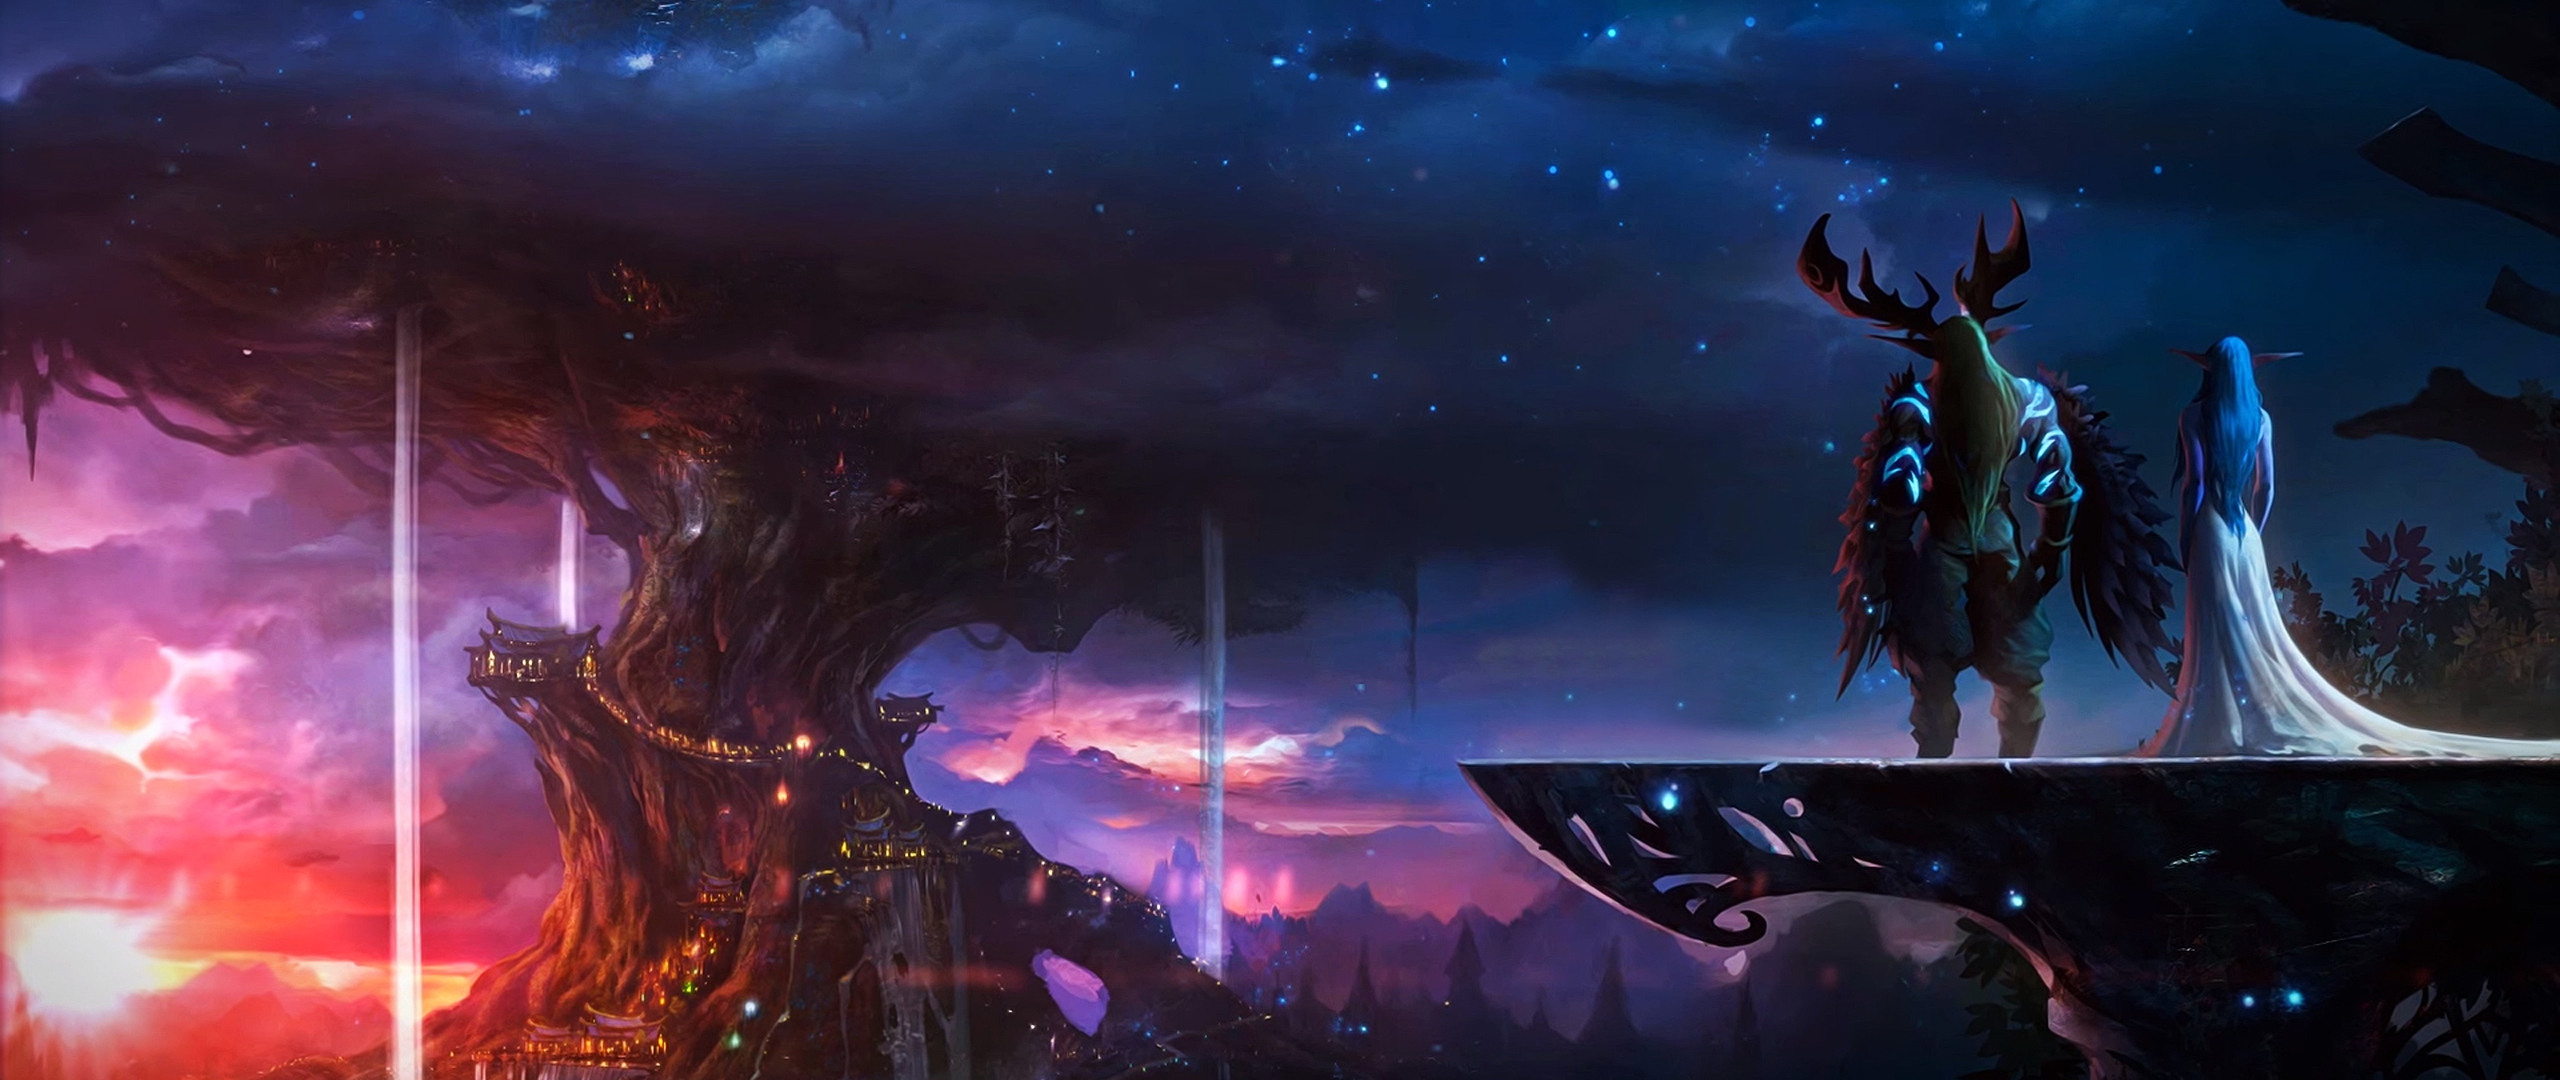 2560x1080 Elf And Knight World Of Warcraft 2560x1080 Resolution Hd